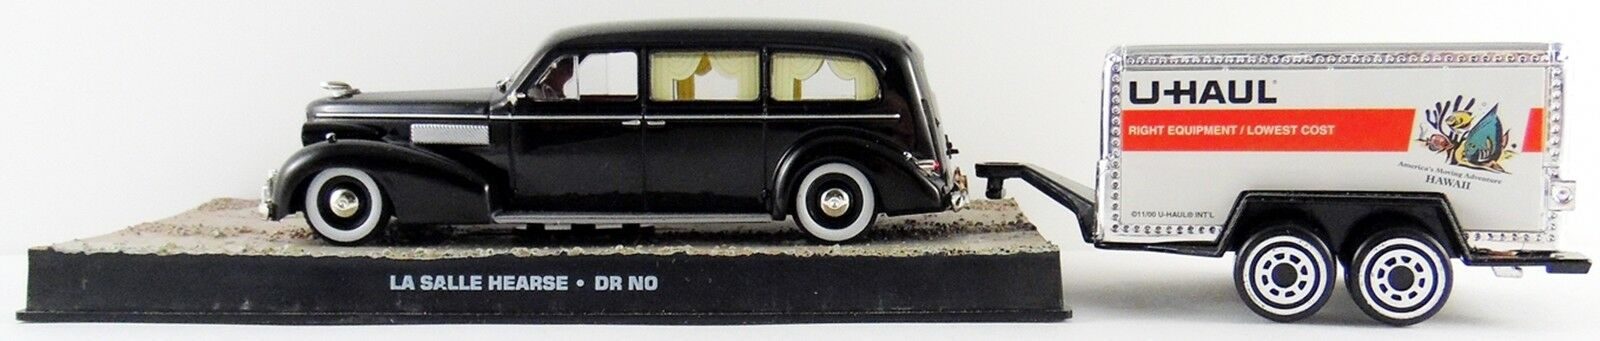 1930's La Salle James Bond Hearse from Dr.No 1 32 Scale  w   U-Haul Trailer